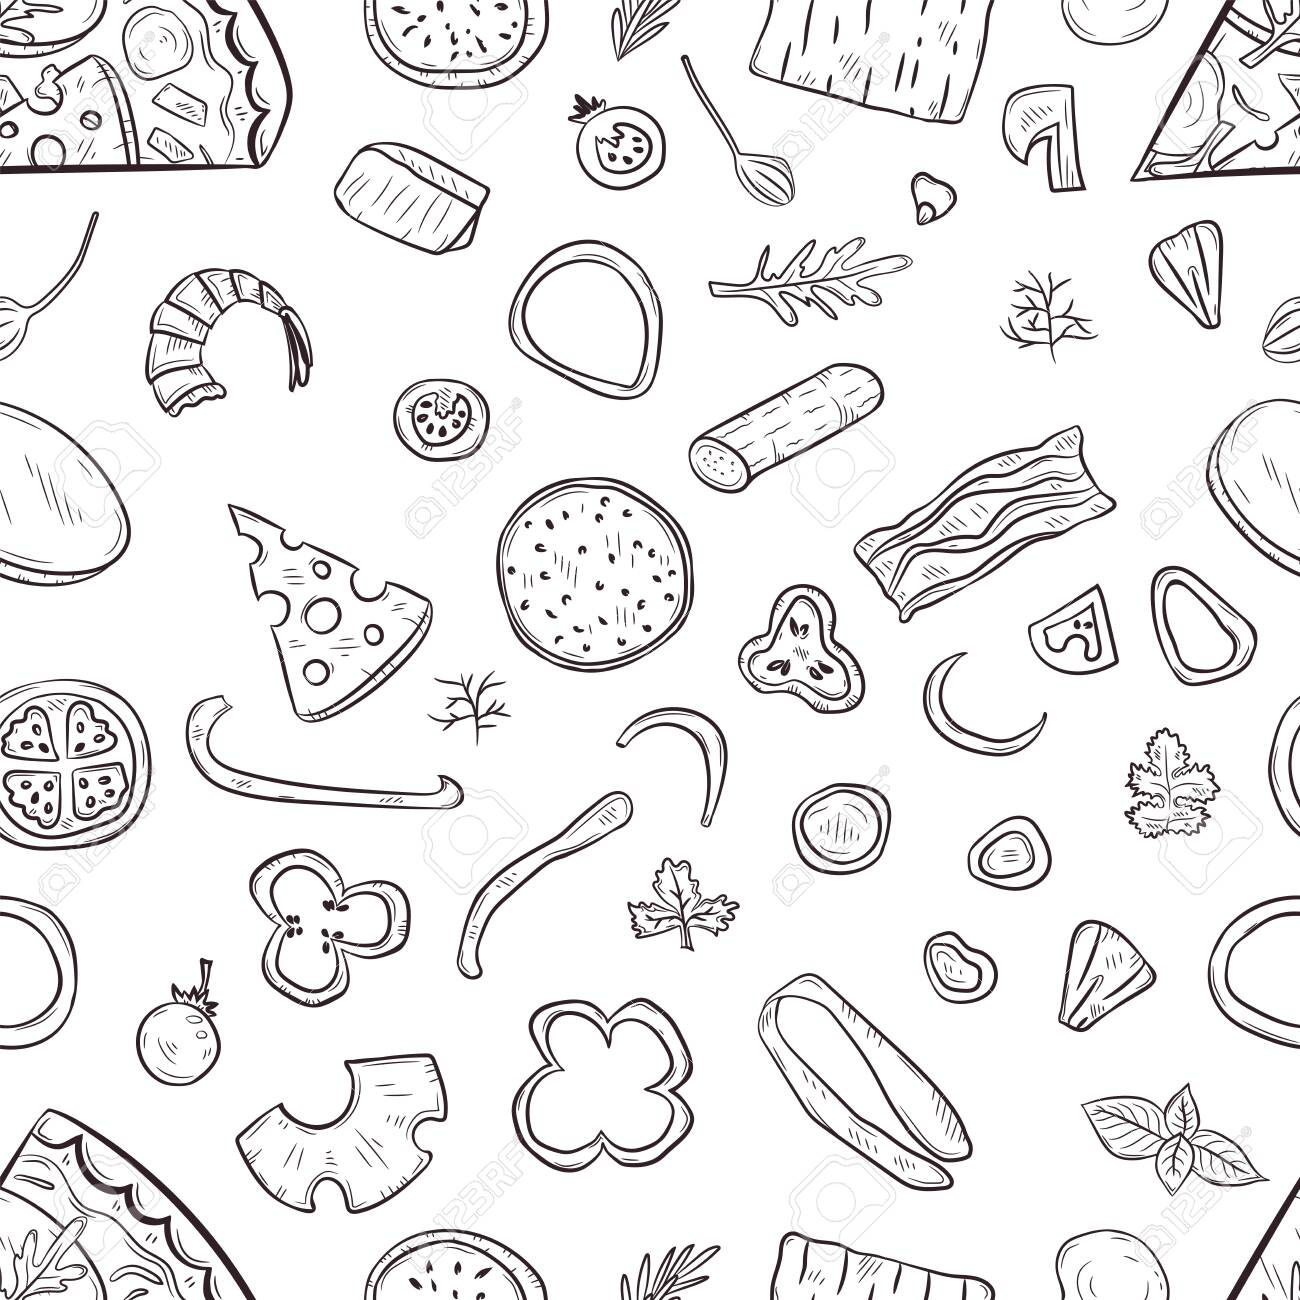 Vector seamless pattern with hand drawn pizza and pizza igridients - 144209029